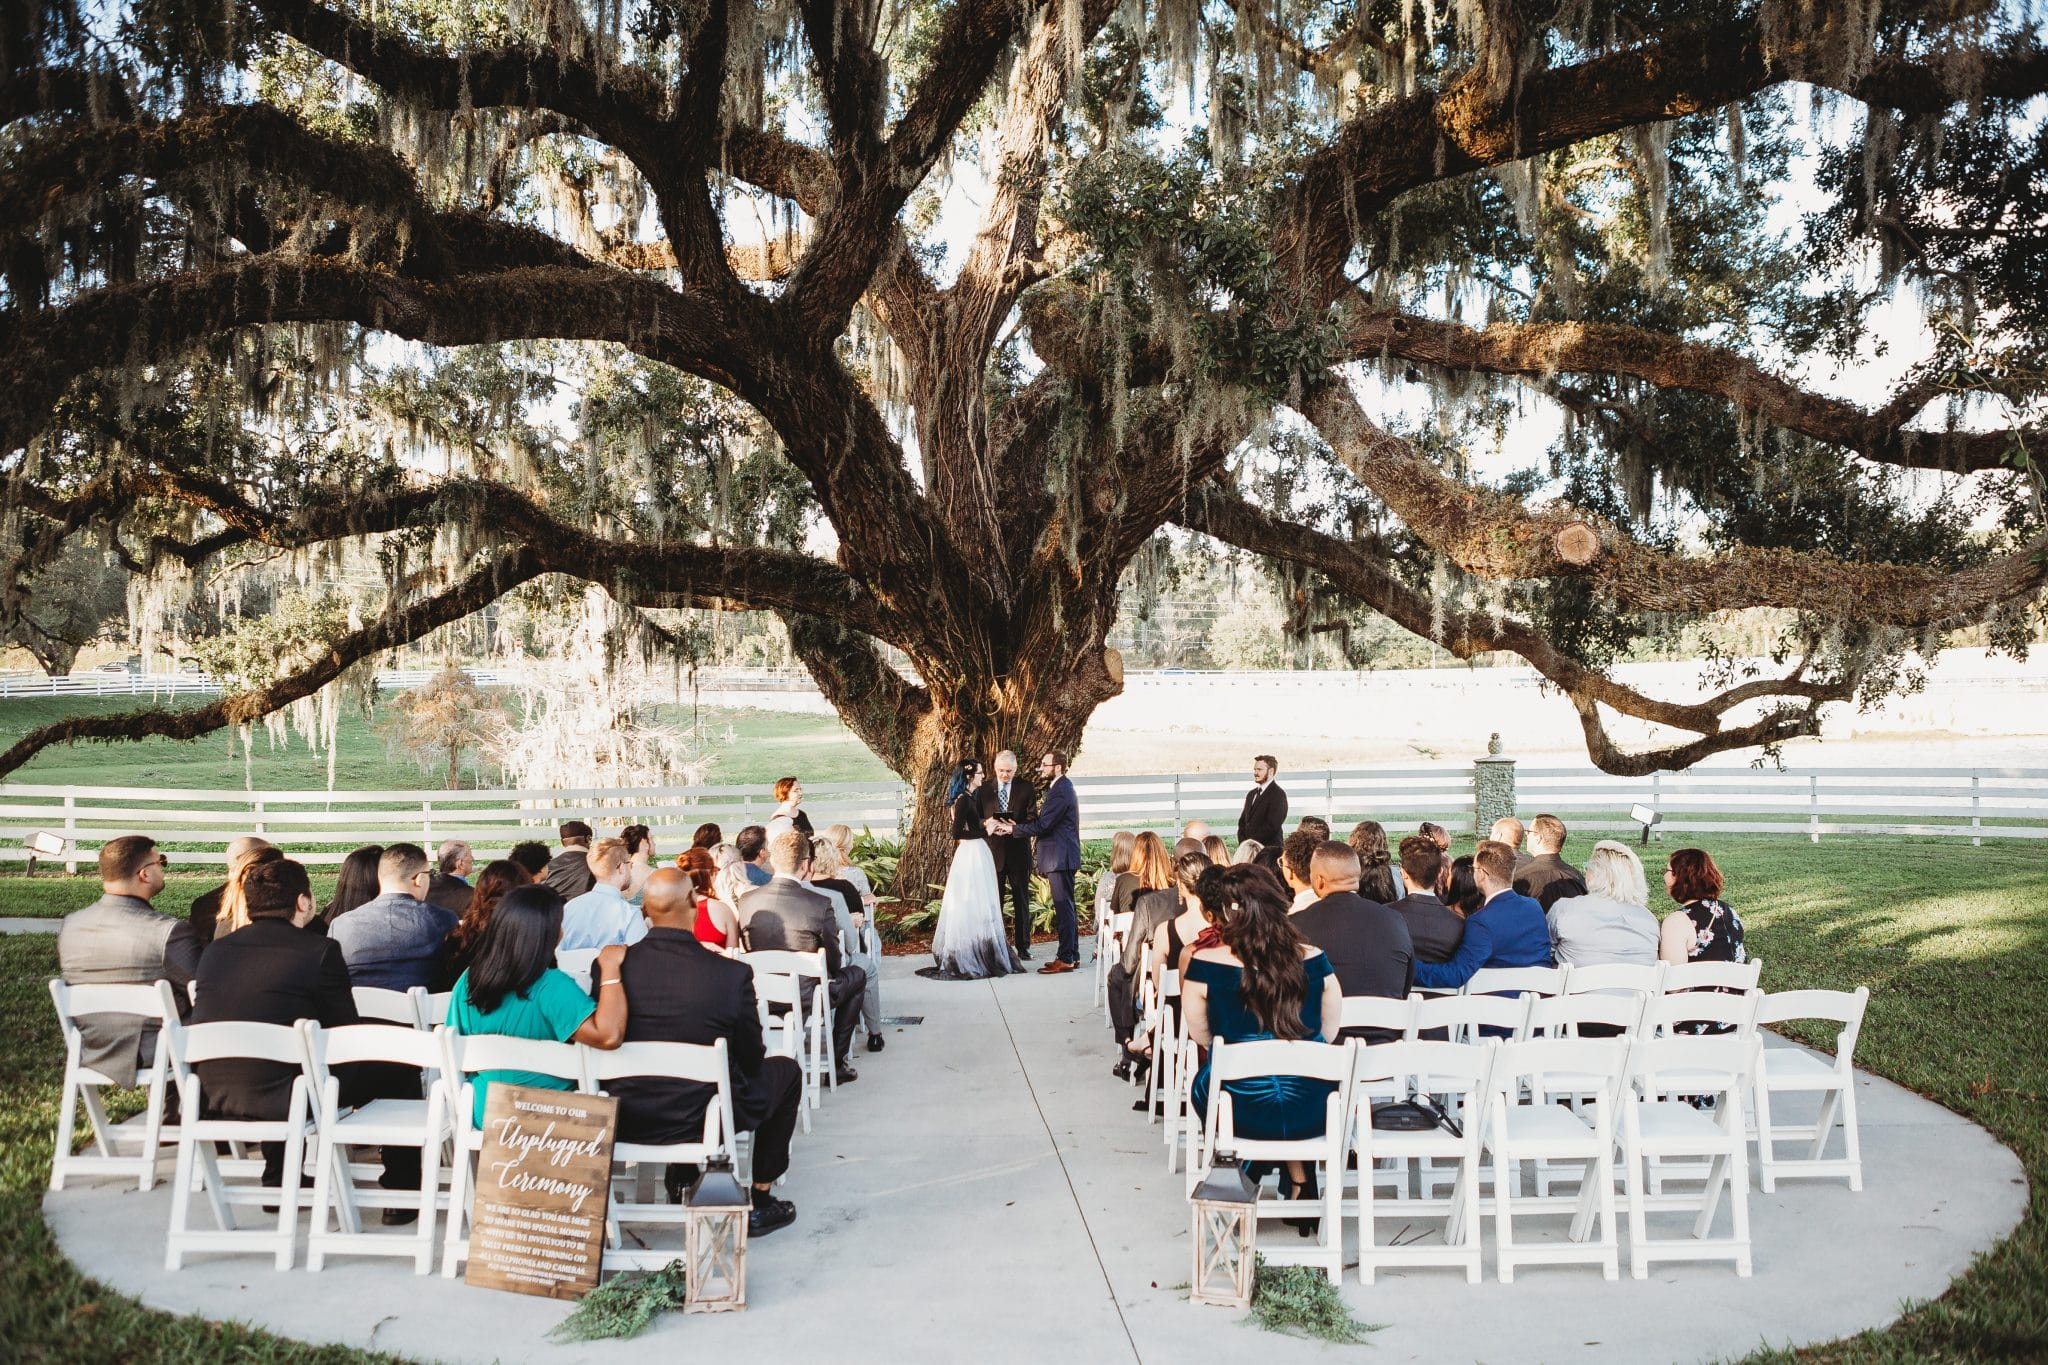 Rachel Doyle Photography - Unplugged wedding outside under a tree